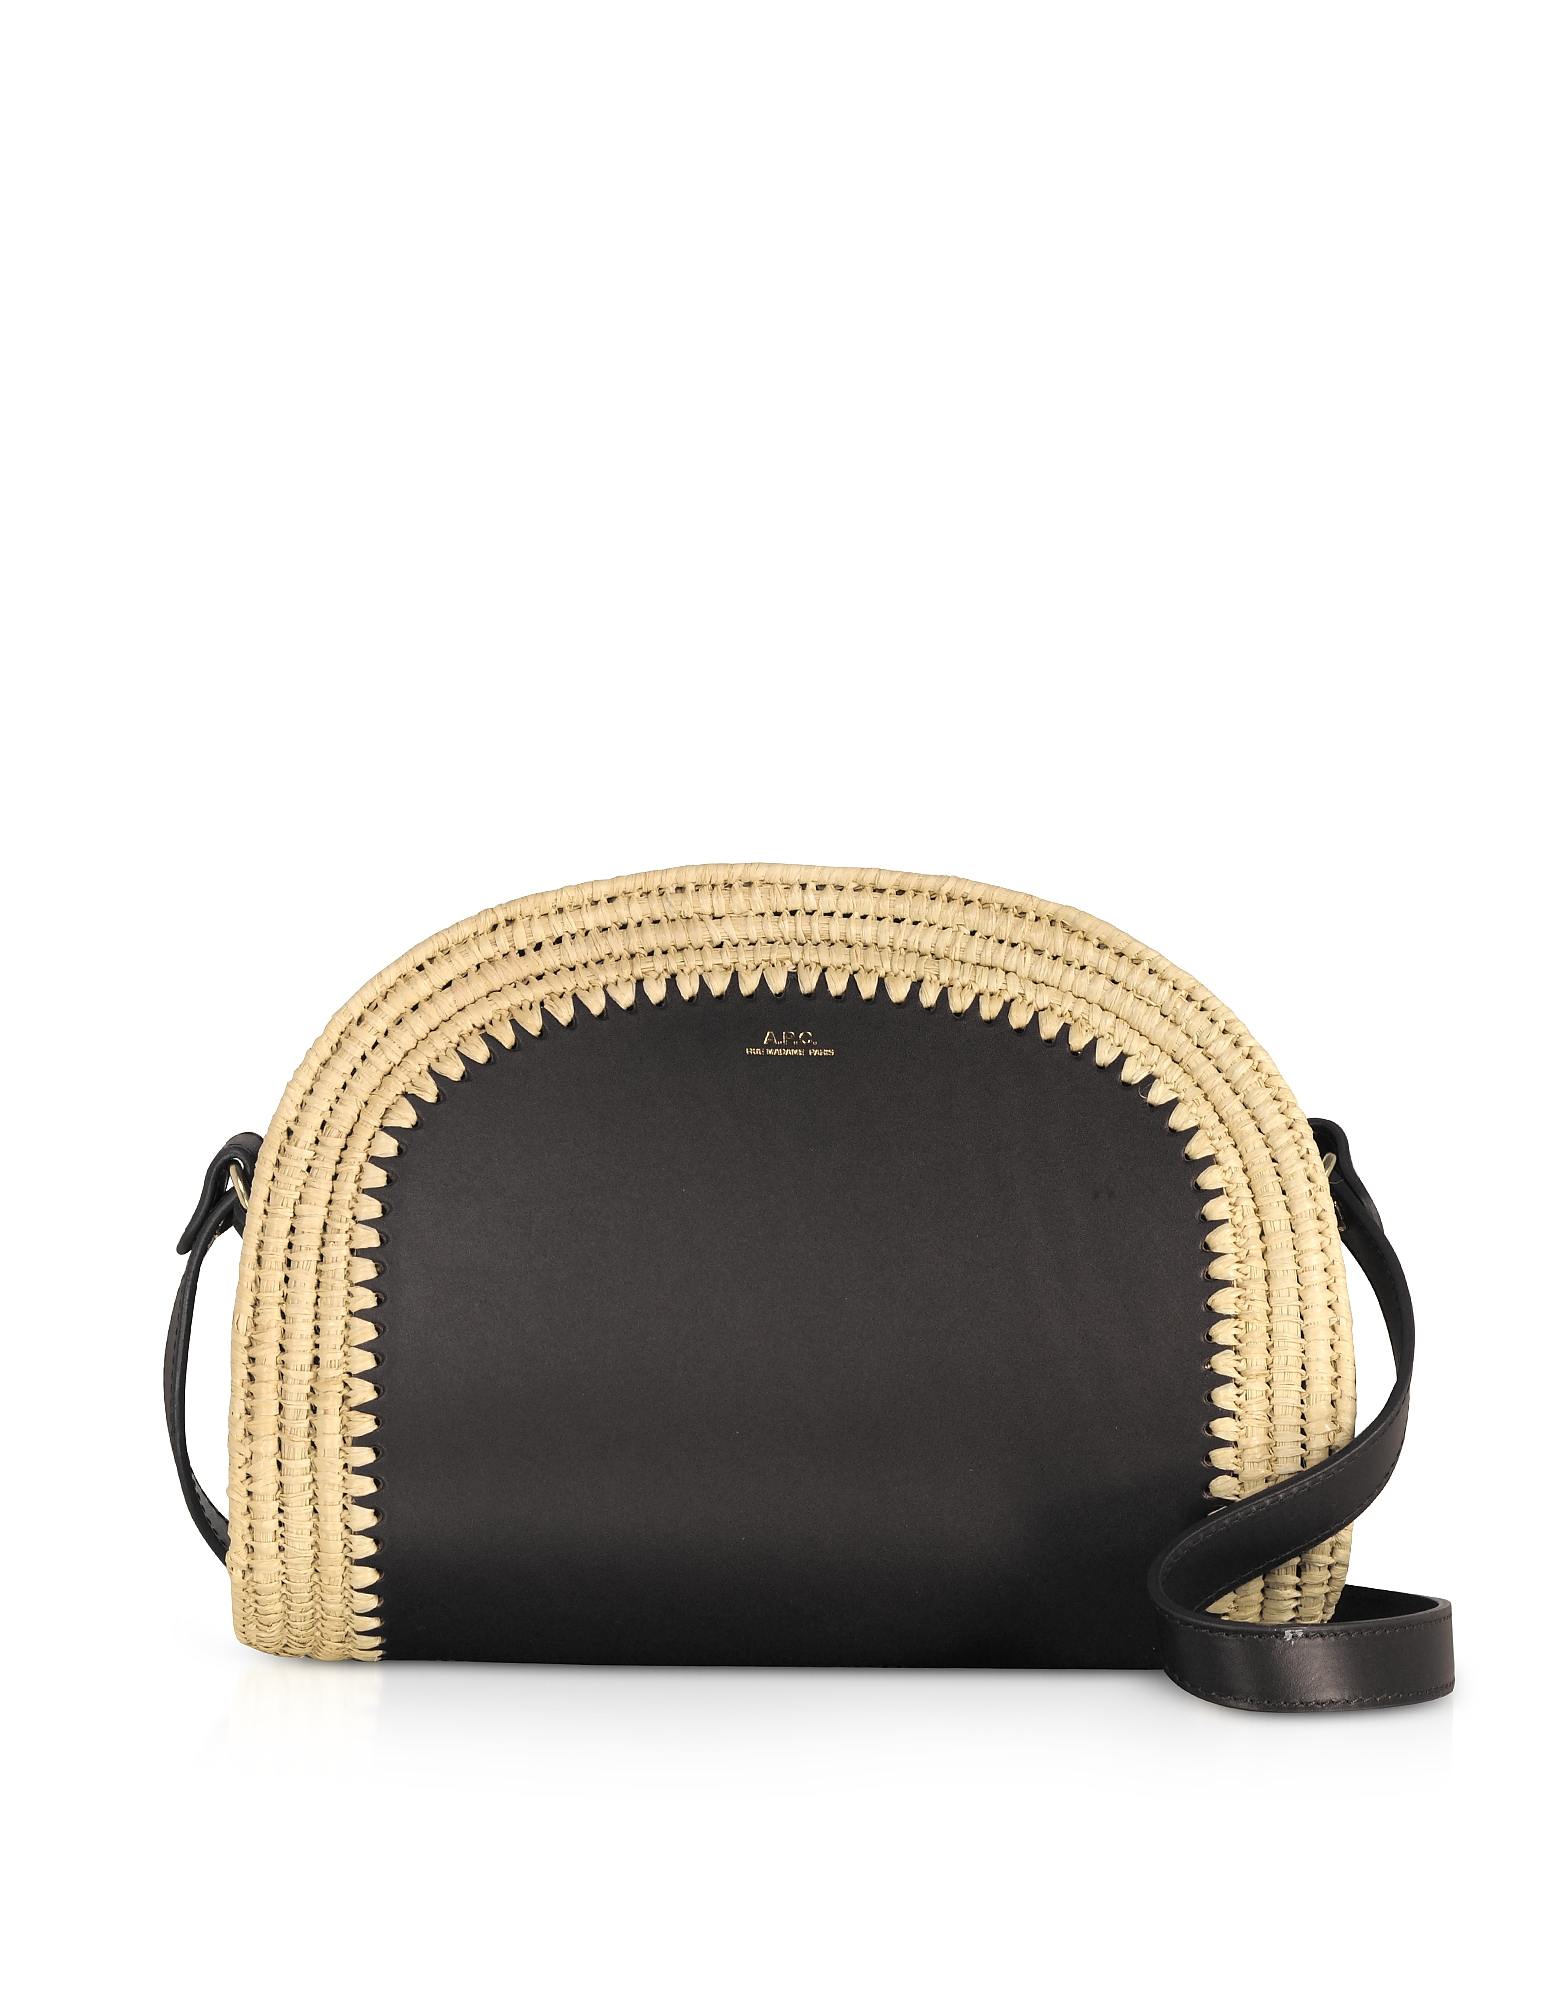 A.P.C. Designer Handbags, Woven Straw & Leather Demi-Lune Crossbody Bag